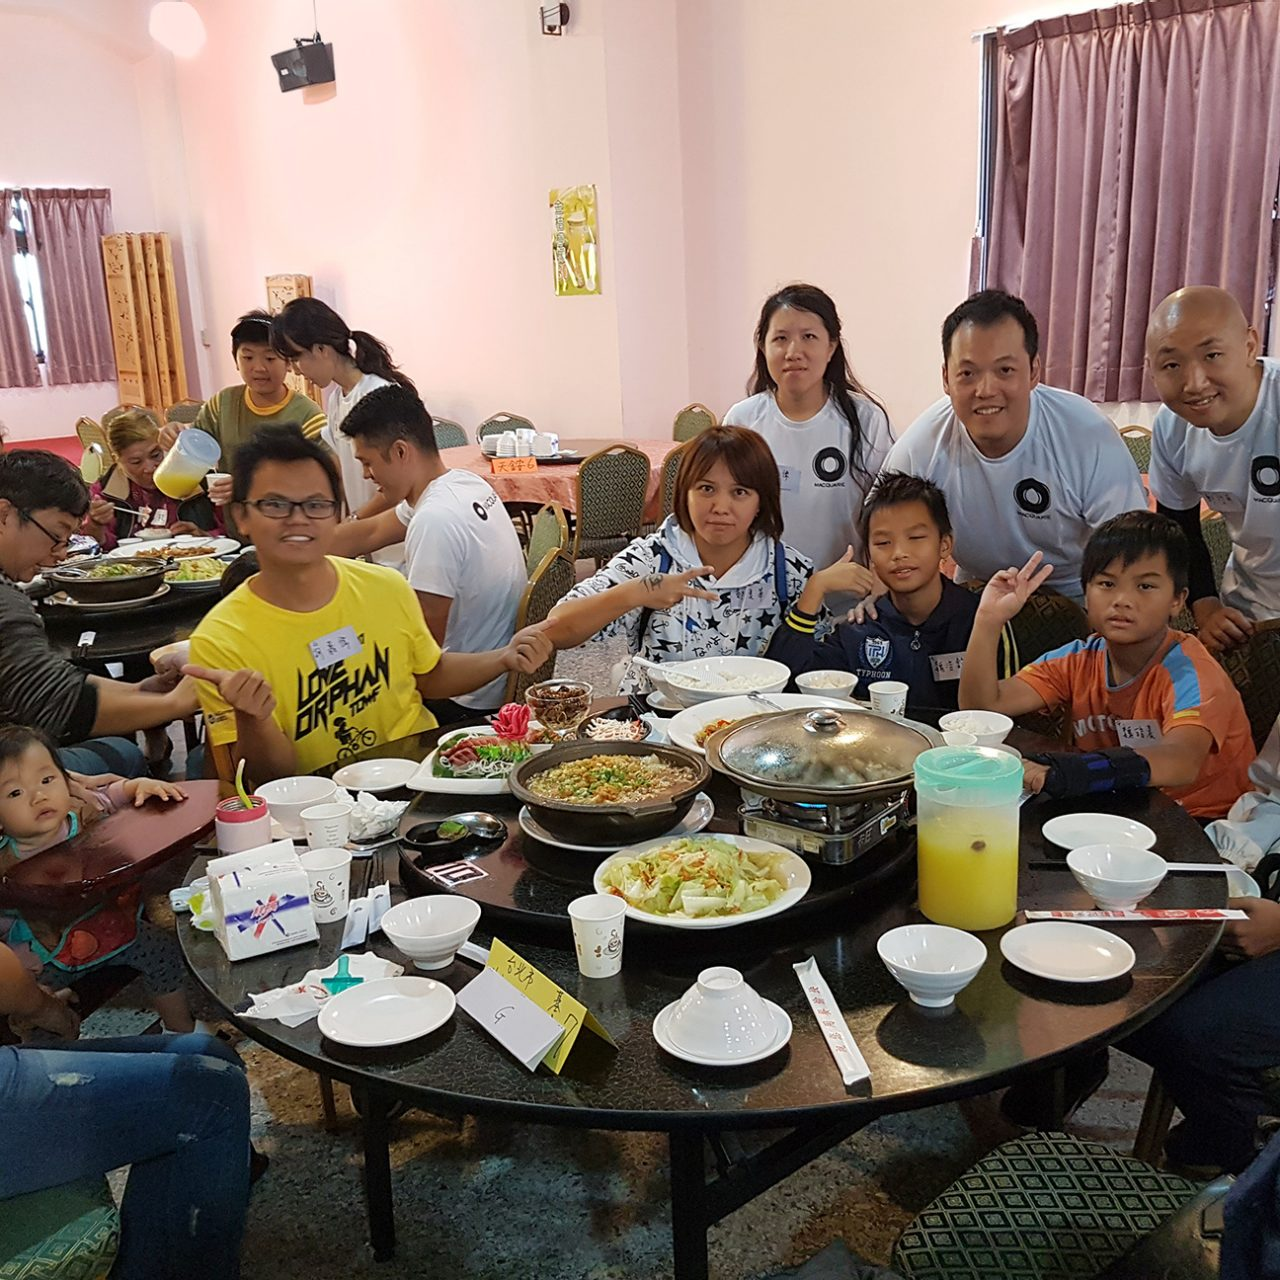 Taipei staff organised events with the local Orphan Welfare Foundation